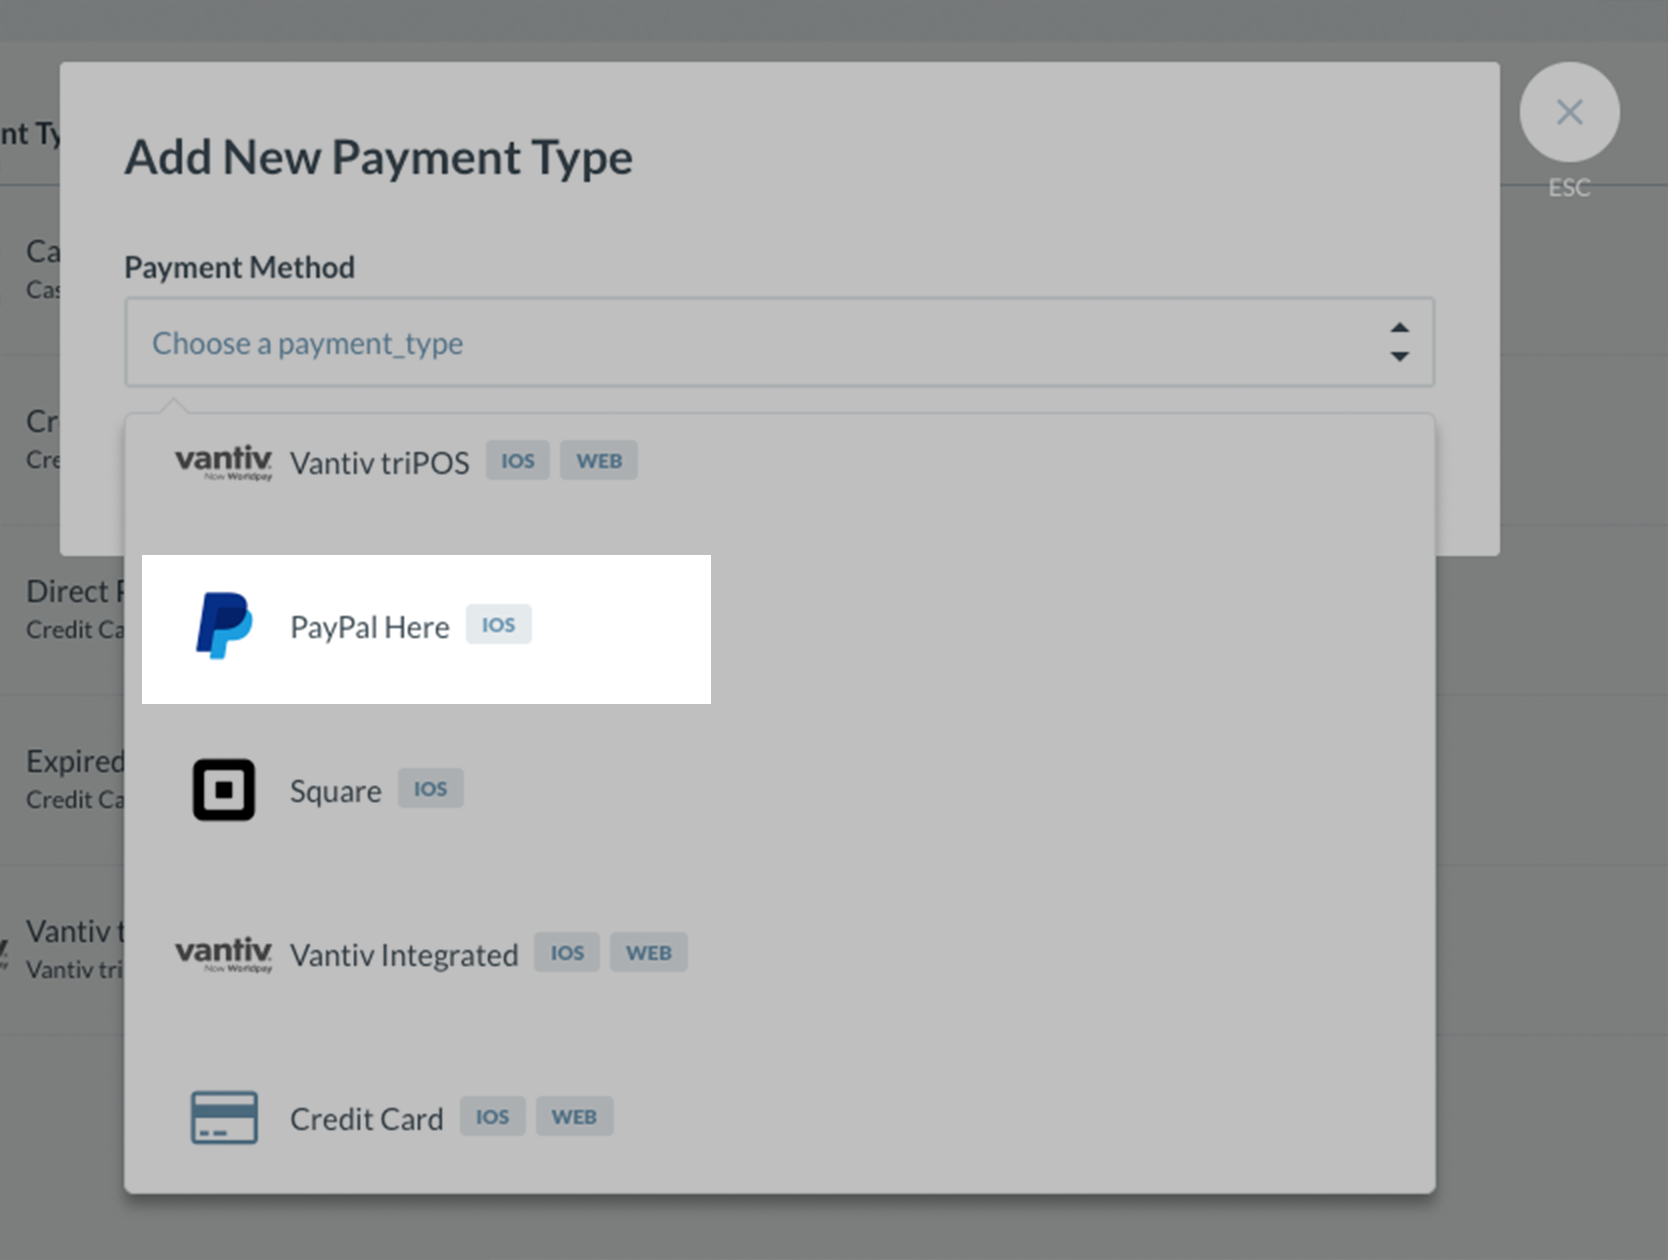 choose paypal here from the drop down list - Paypal Credit Card Swiper